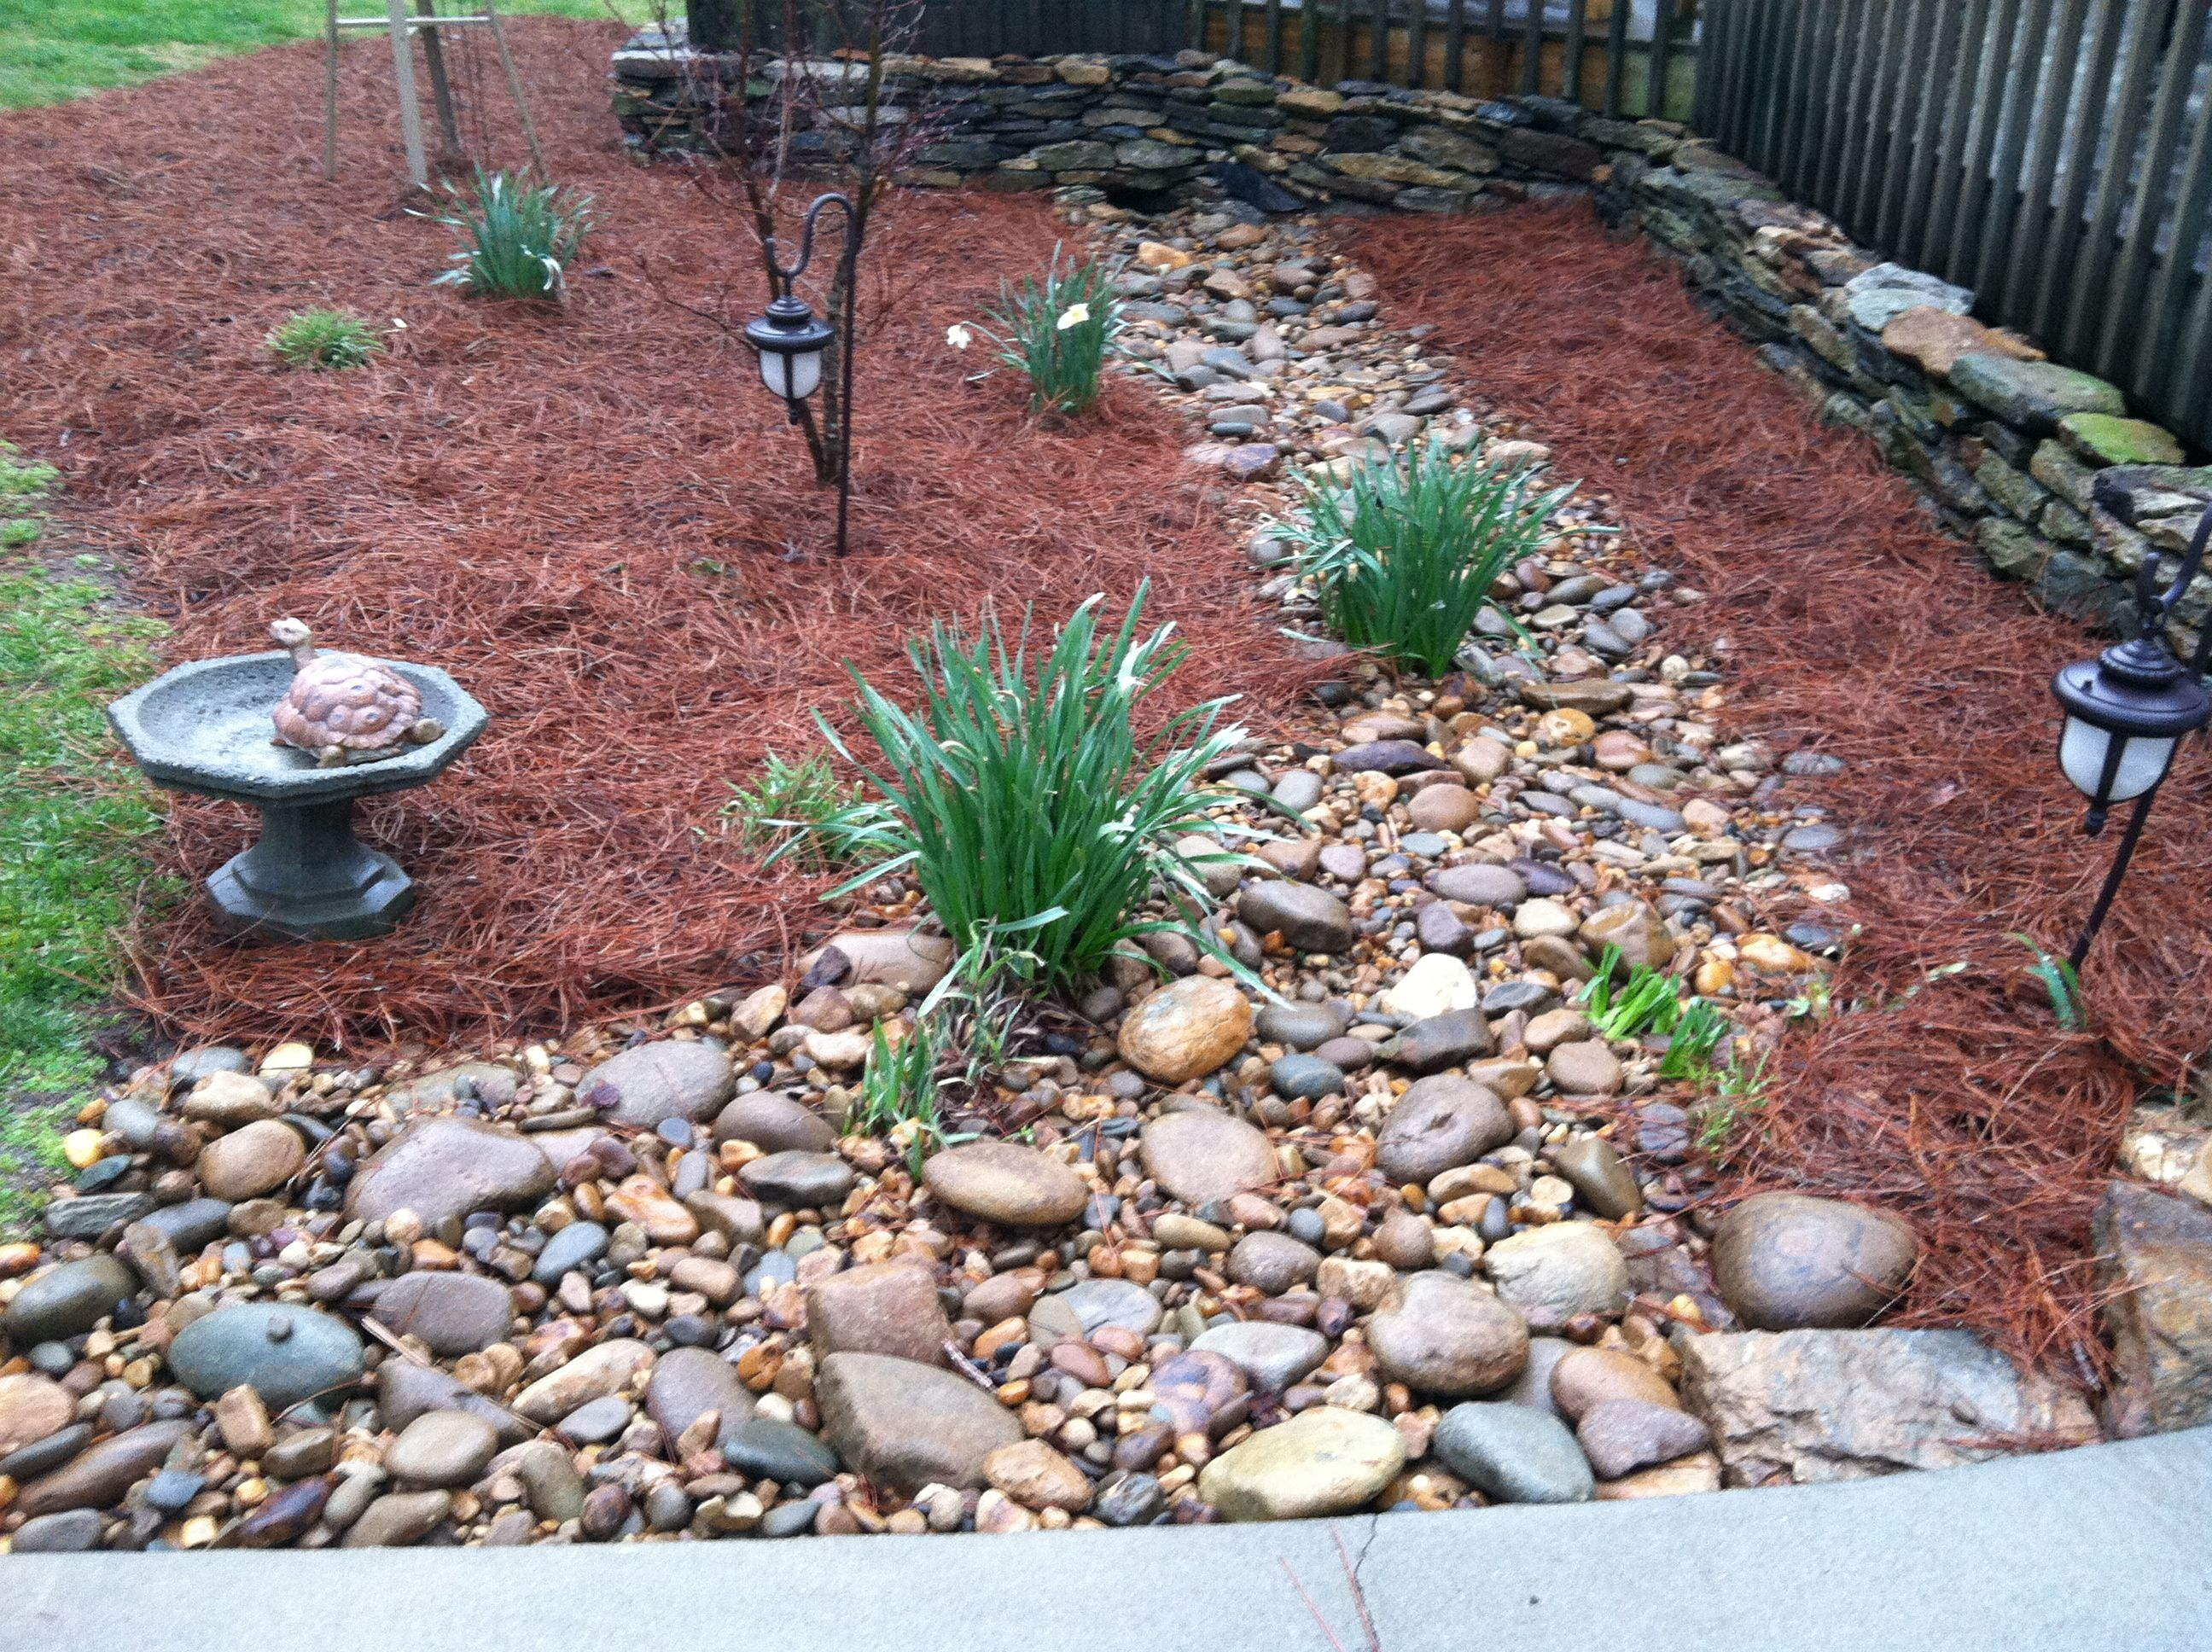 Dry creek bed for drainage. Despeartely need this in my